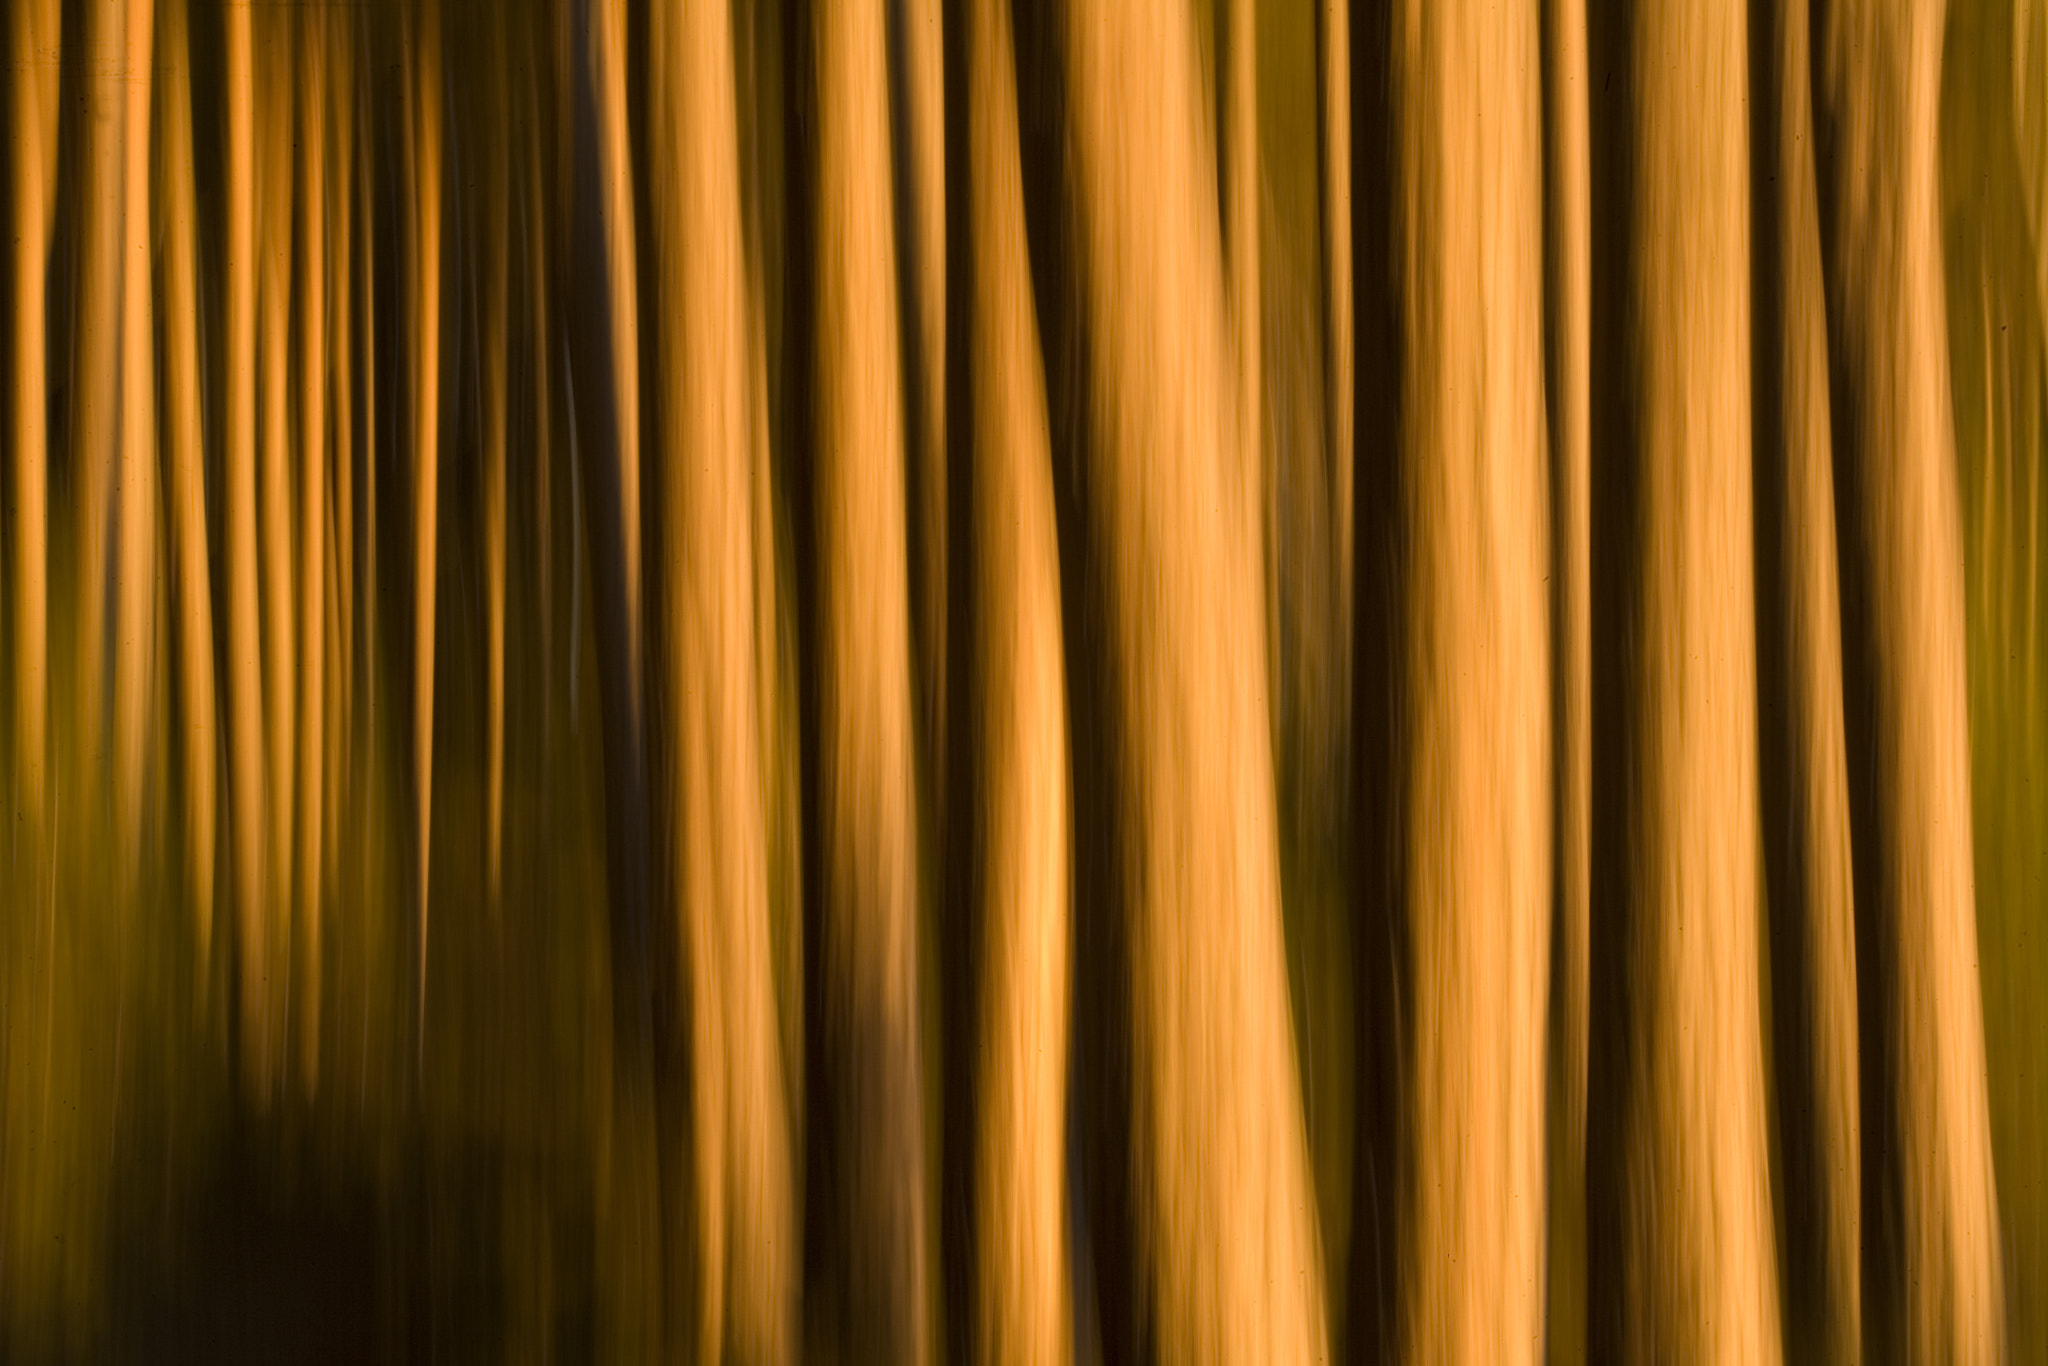 Photograph Abstract of pine forest by Peter Cairns on 500px